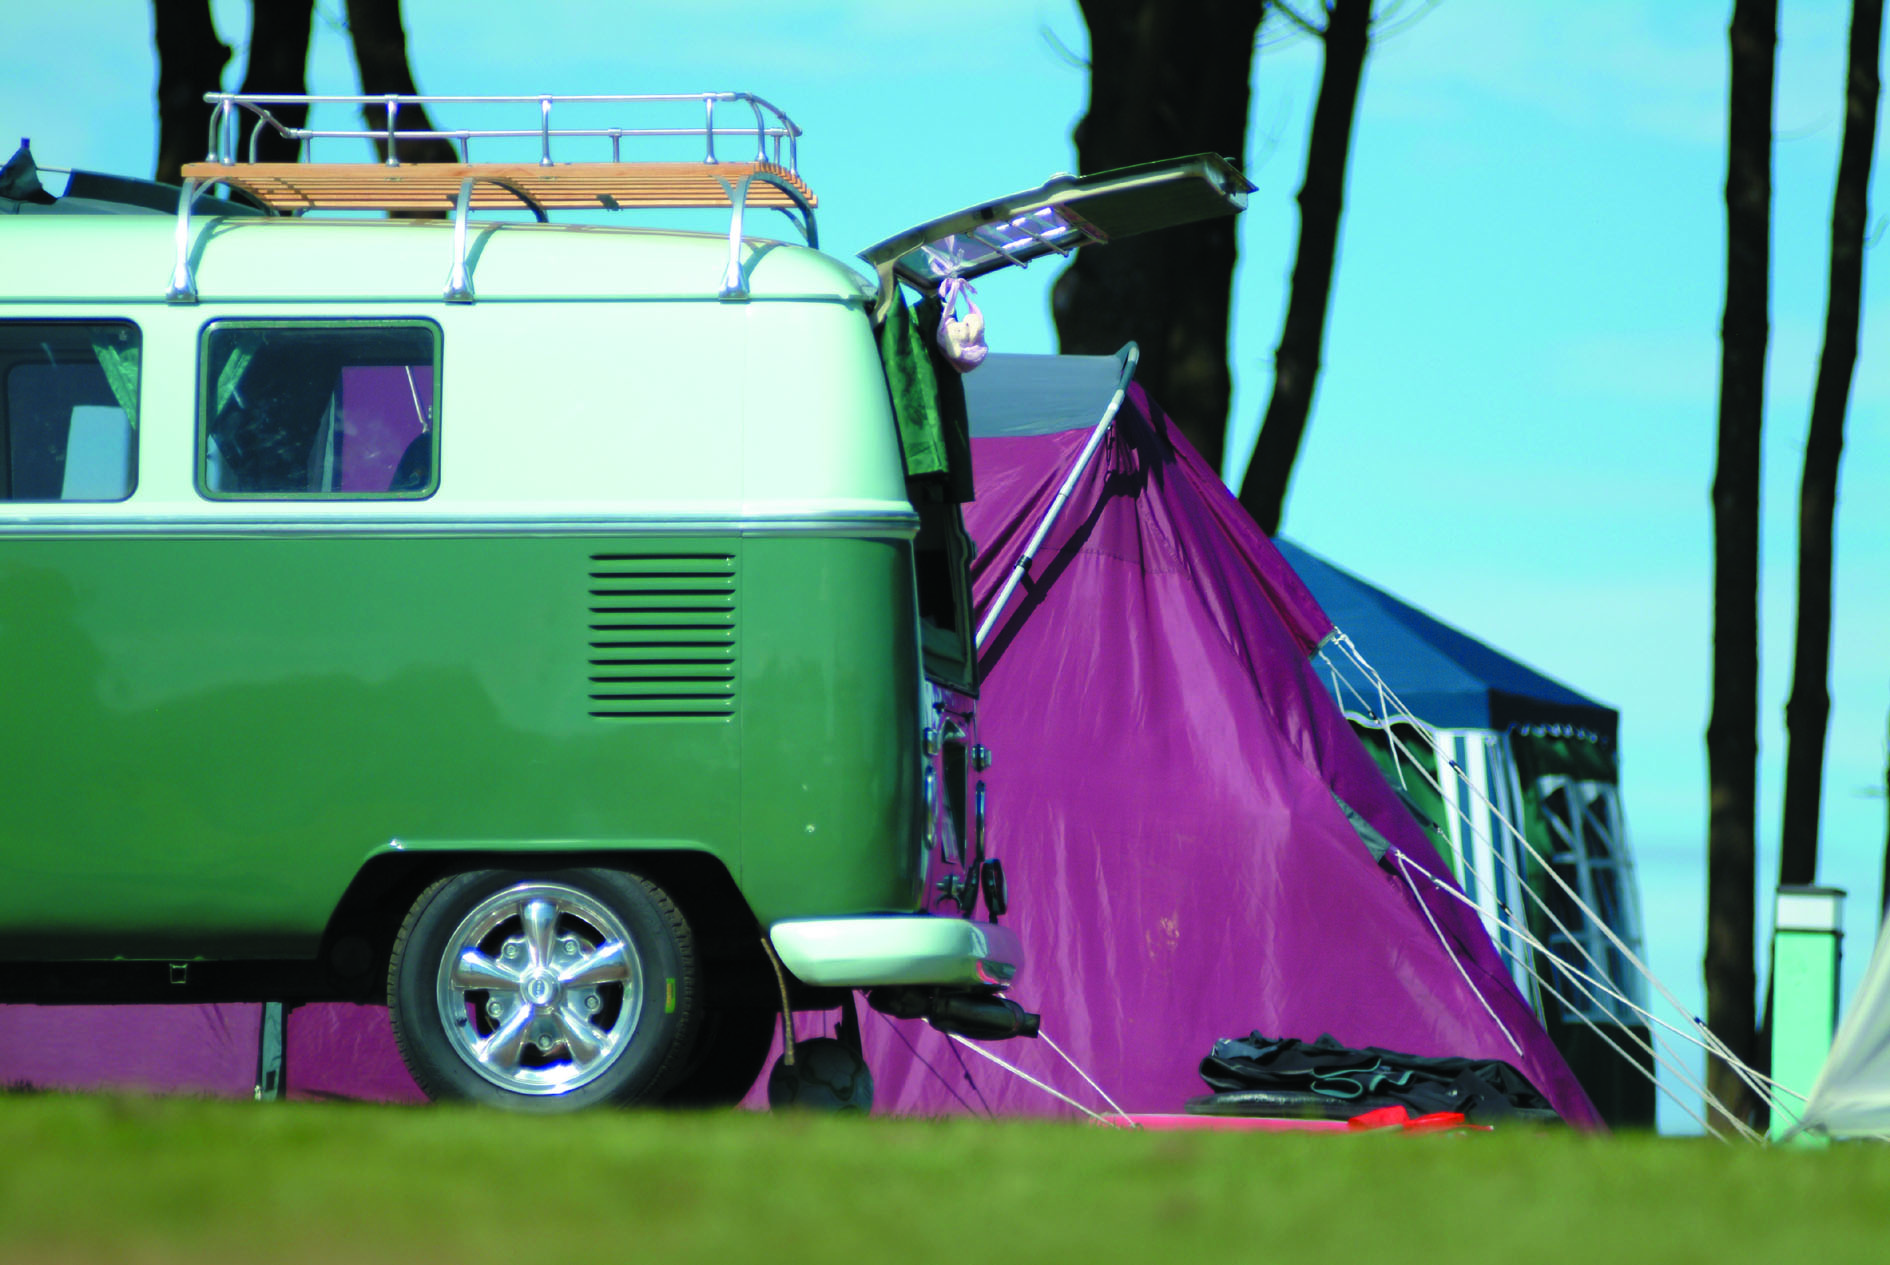 Camper Van Hire in Cornwall, hire a VW camper on your holiday